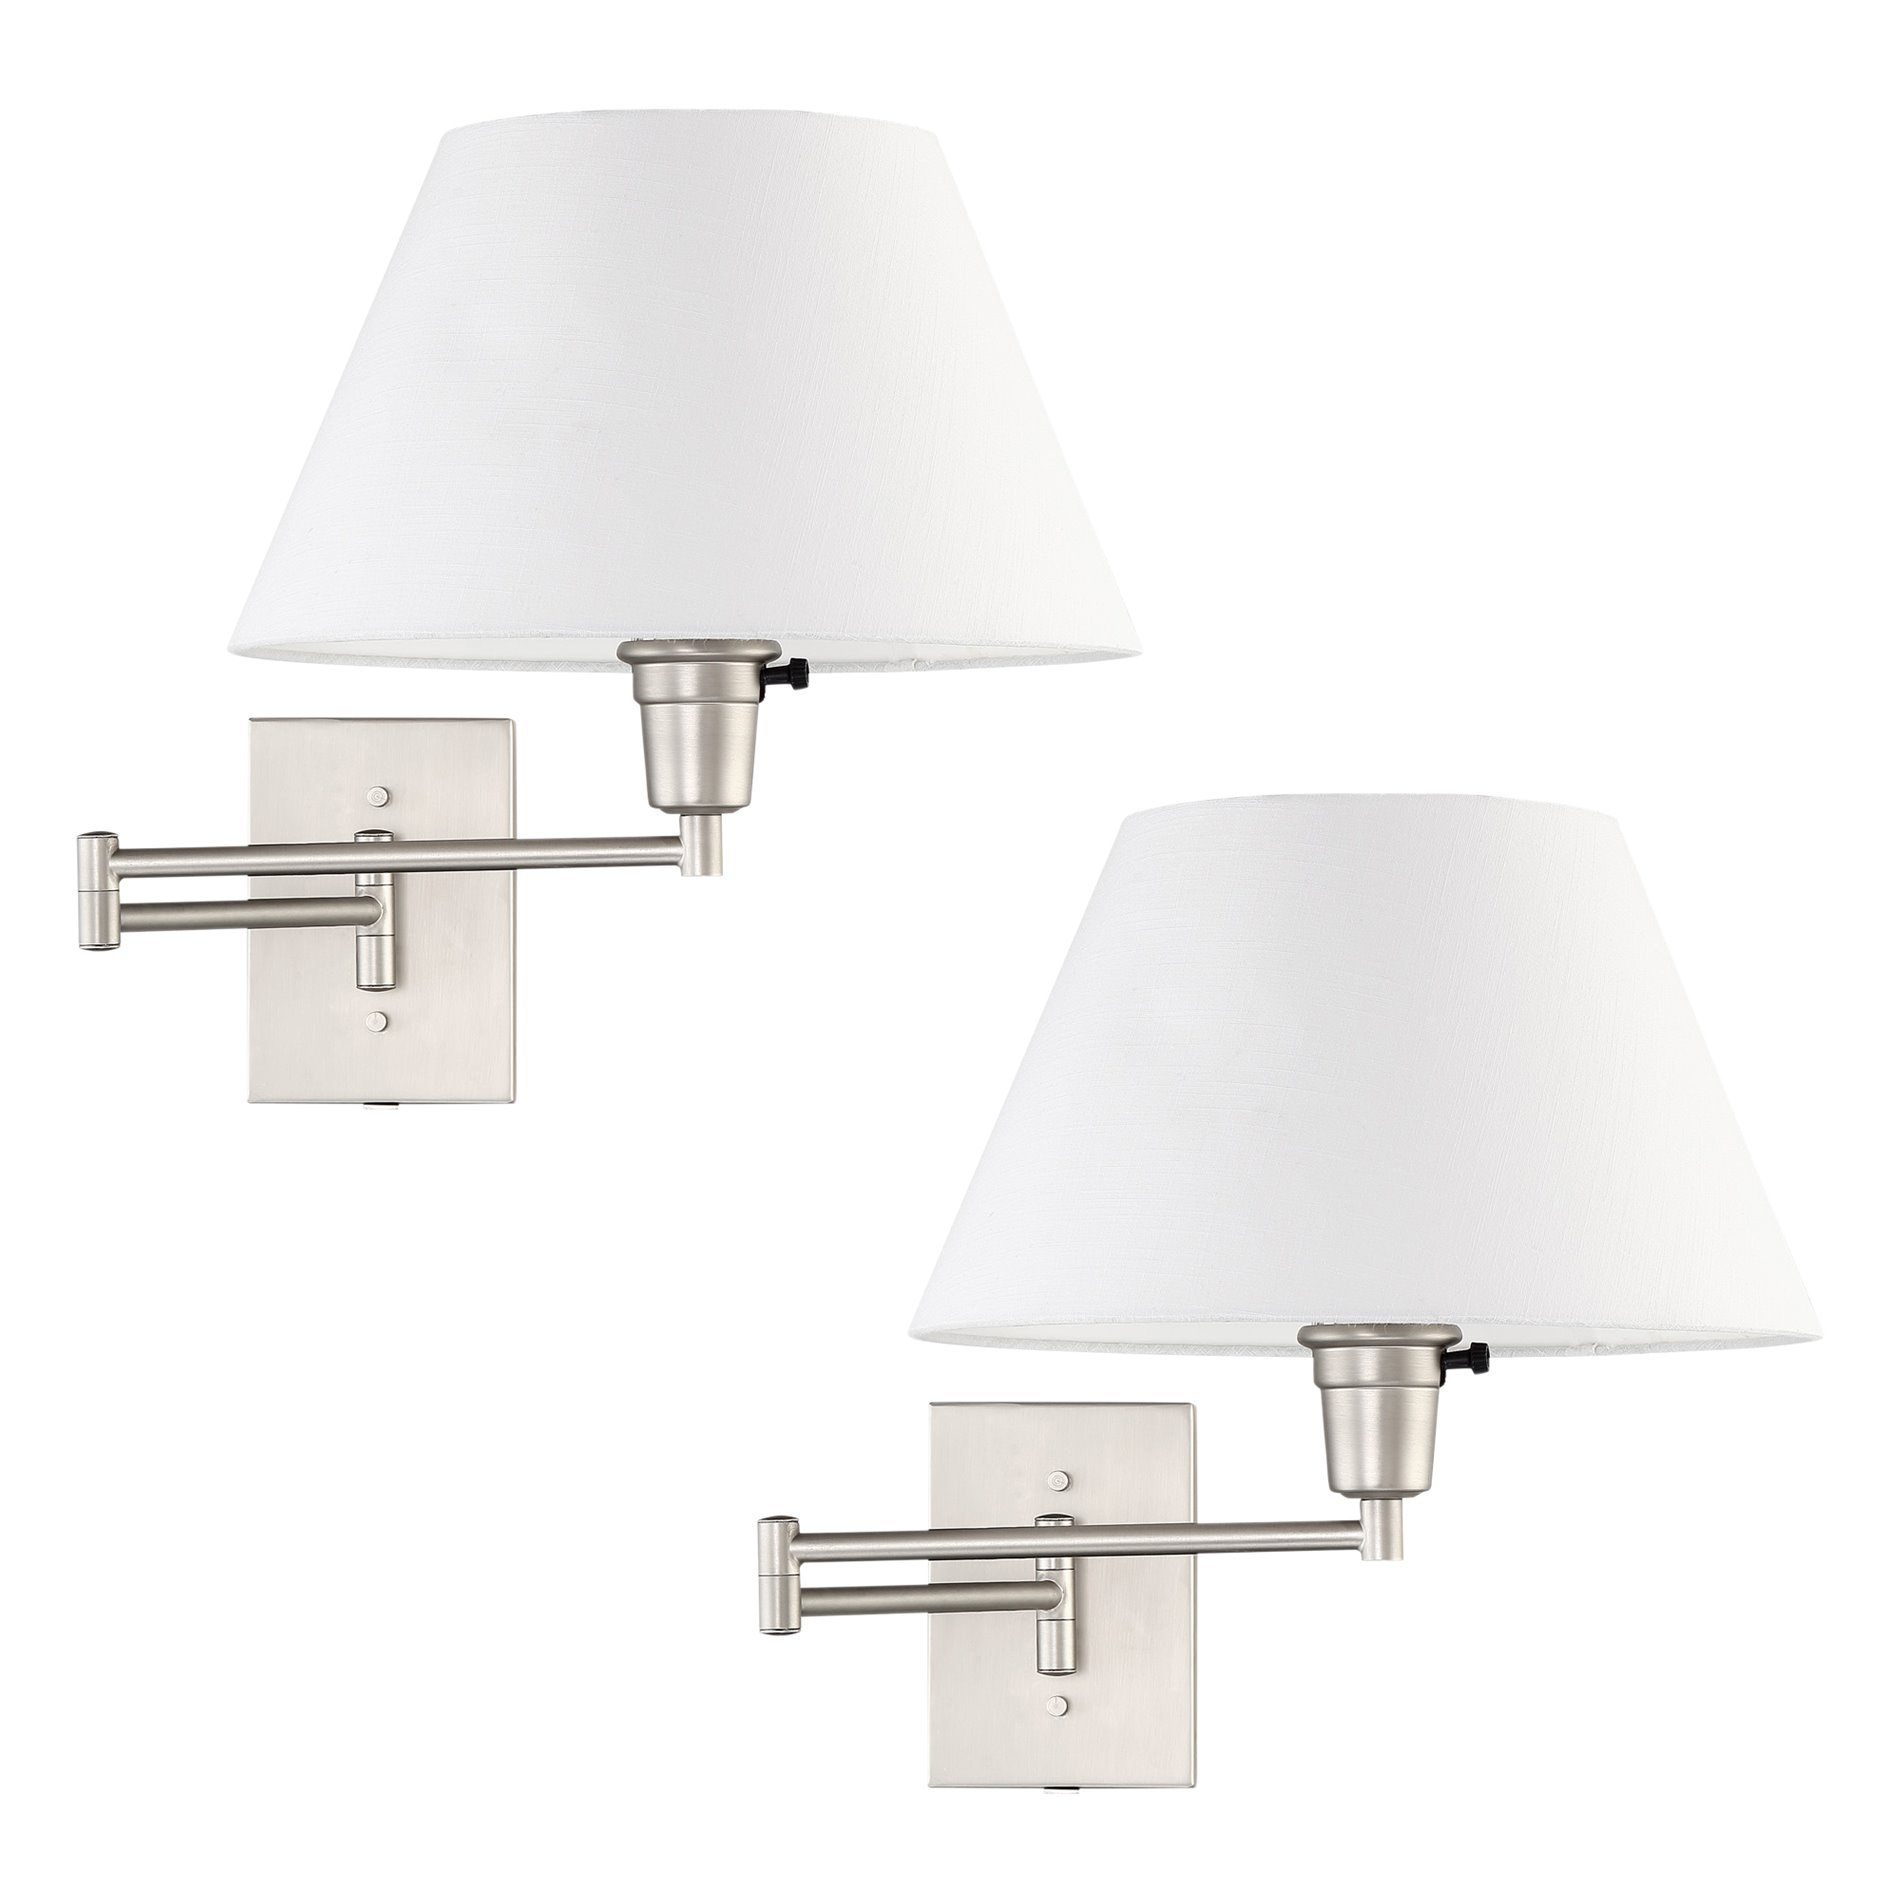 Revel Cambridge 13'' Swing Arm Wall Lamp - Plug In/Wall Mount + White Fabric Shade, 150W 3-Way, Satin Nickel Finish, 2-Pack by Revel